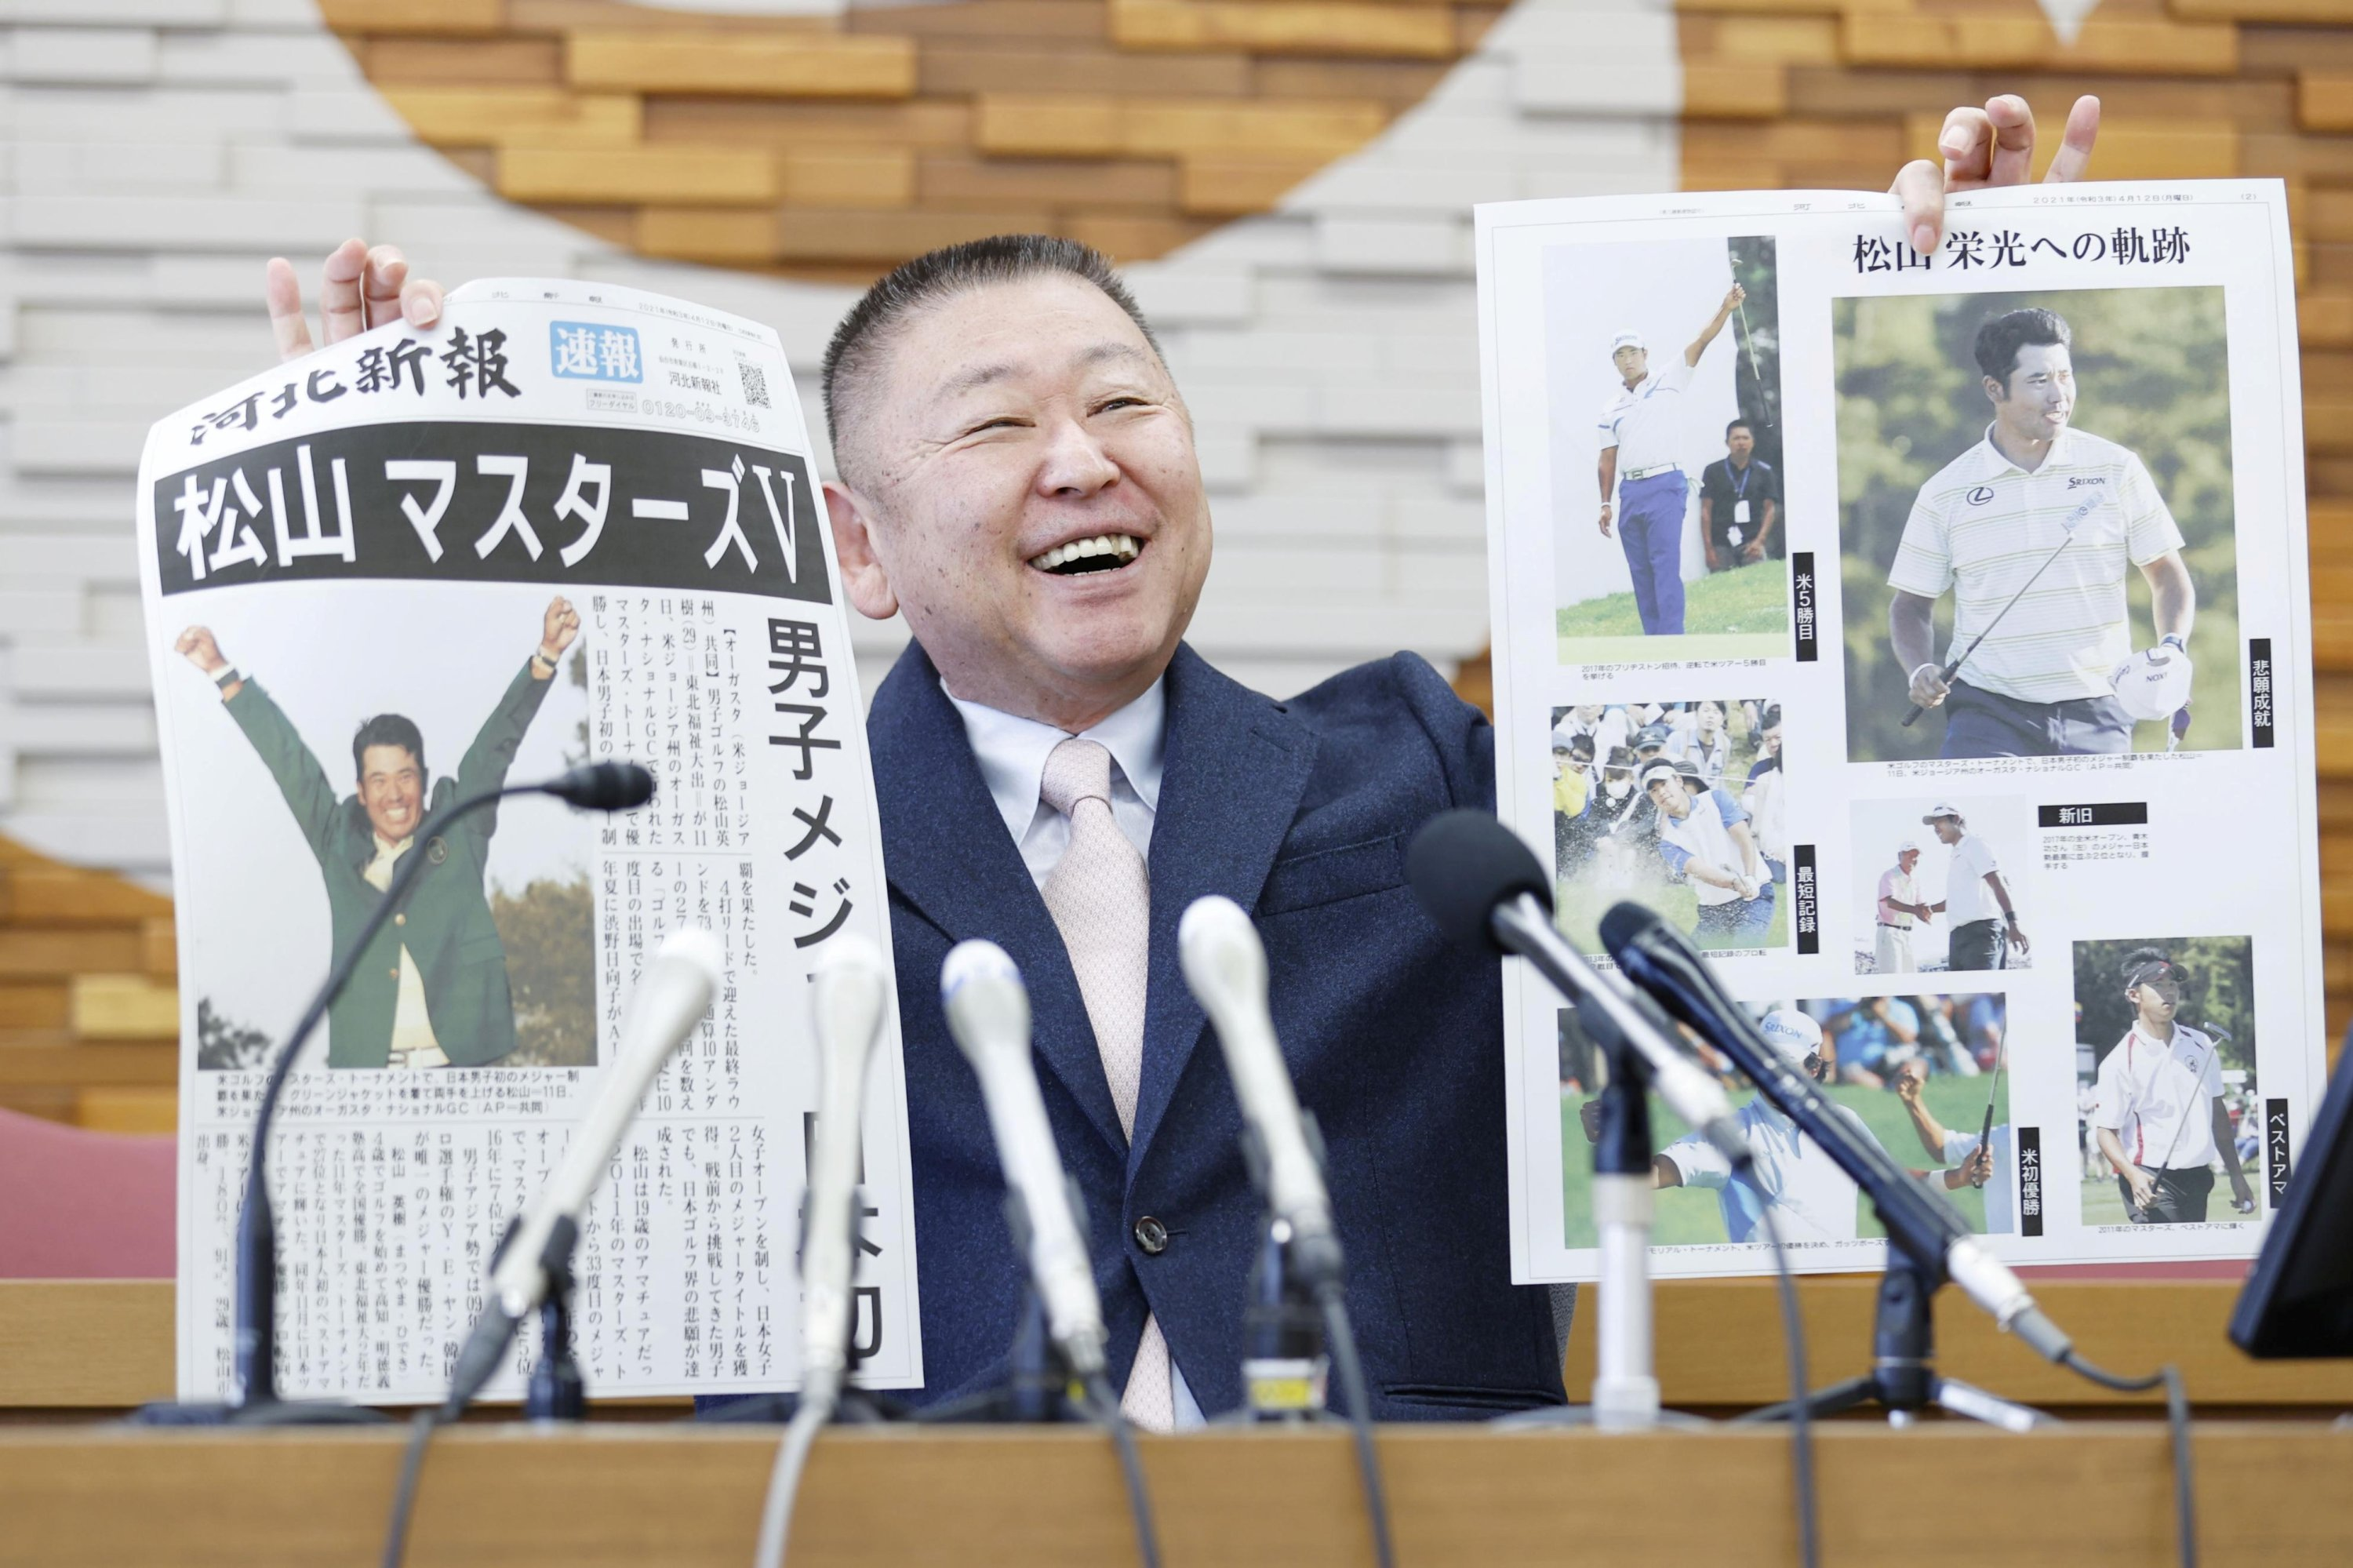 Yasuhiko Abe, who coached golfer Hideki Matsuyama during his Tohoku Fukushi University years, holds special editions of newspapers featuring Matsuyama's Masters victory as he speaks at a press conference in Sendai, Japan, April 12, 2021. (Reuters Photo)